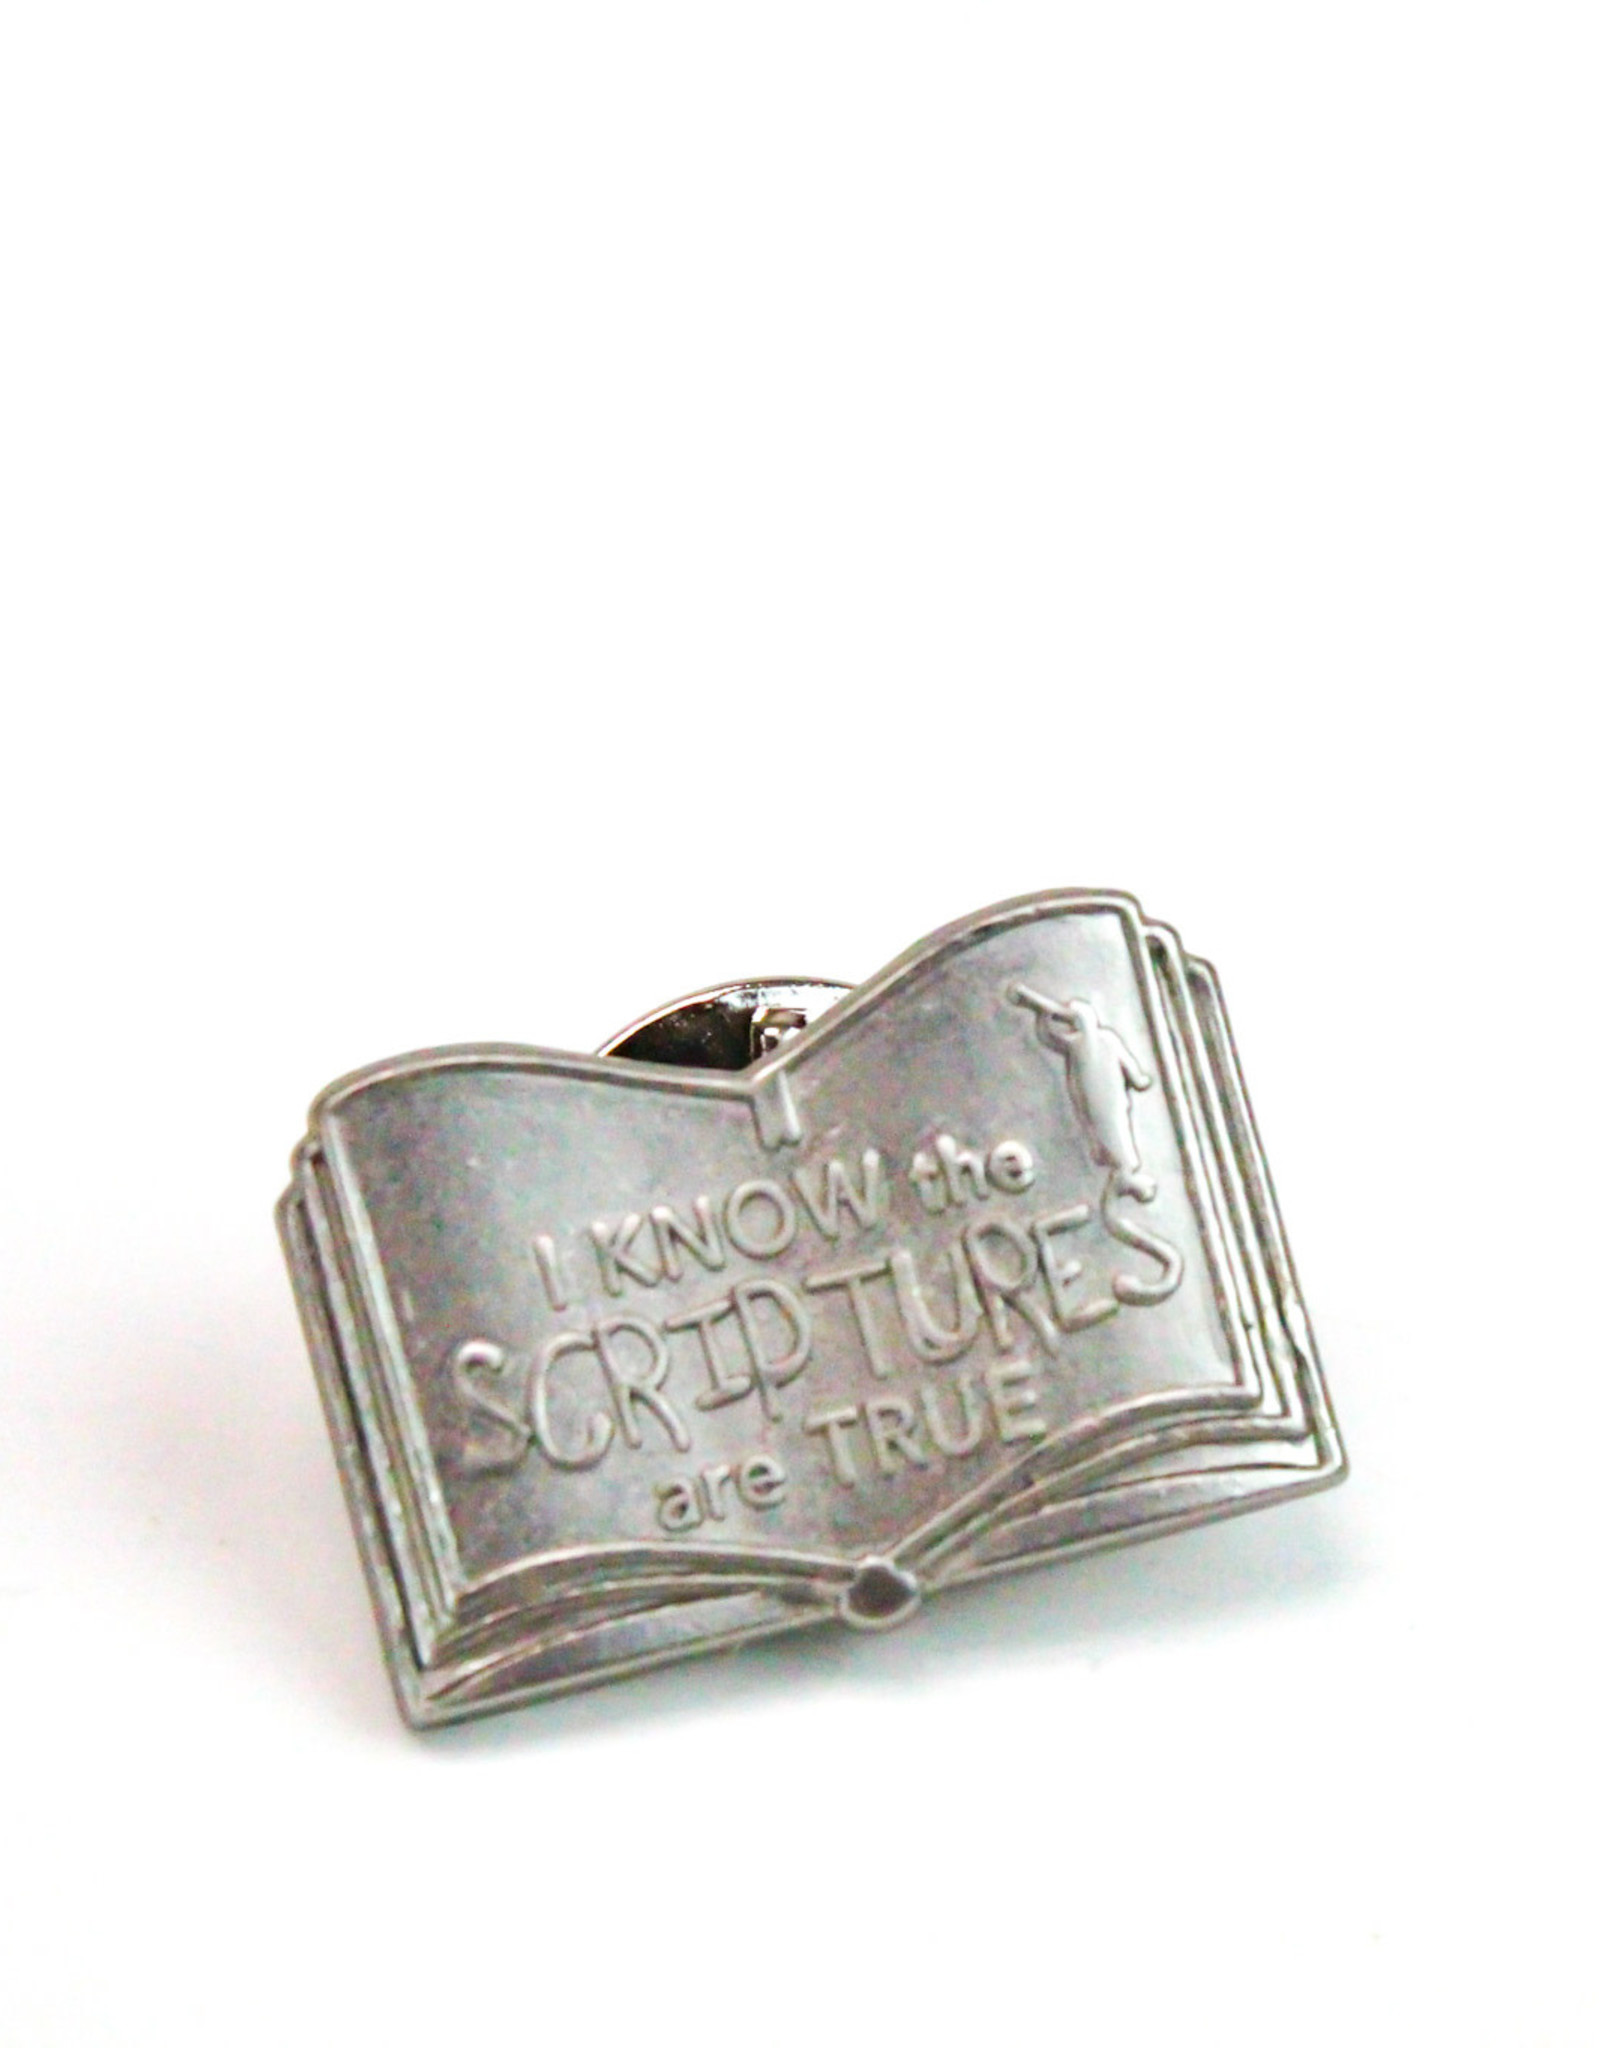 I KNOW THE SCRIPTURES ARE TRUE TIE TACK